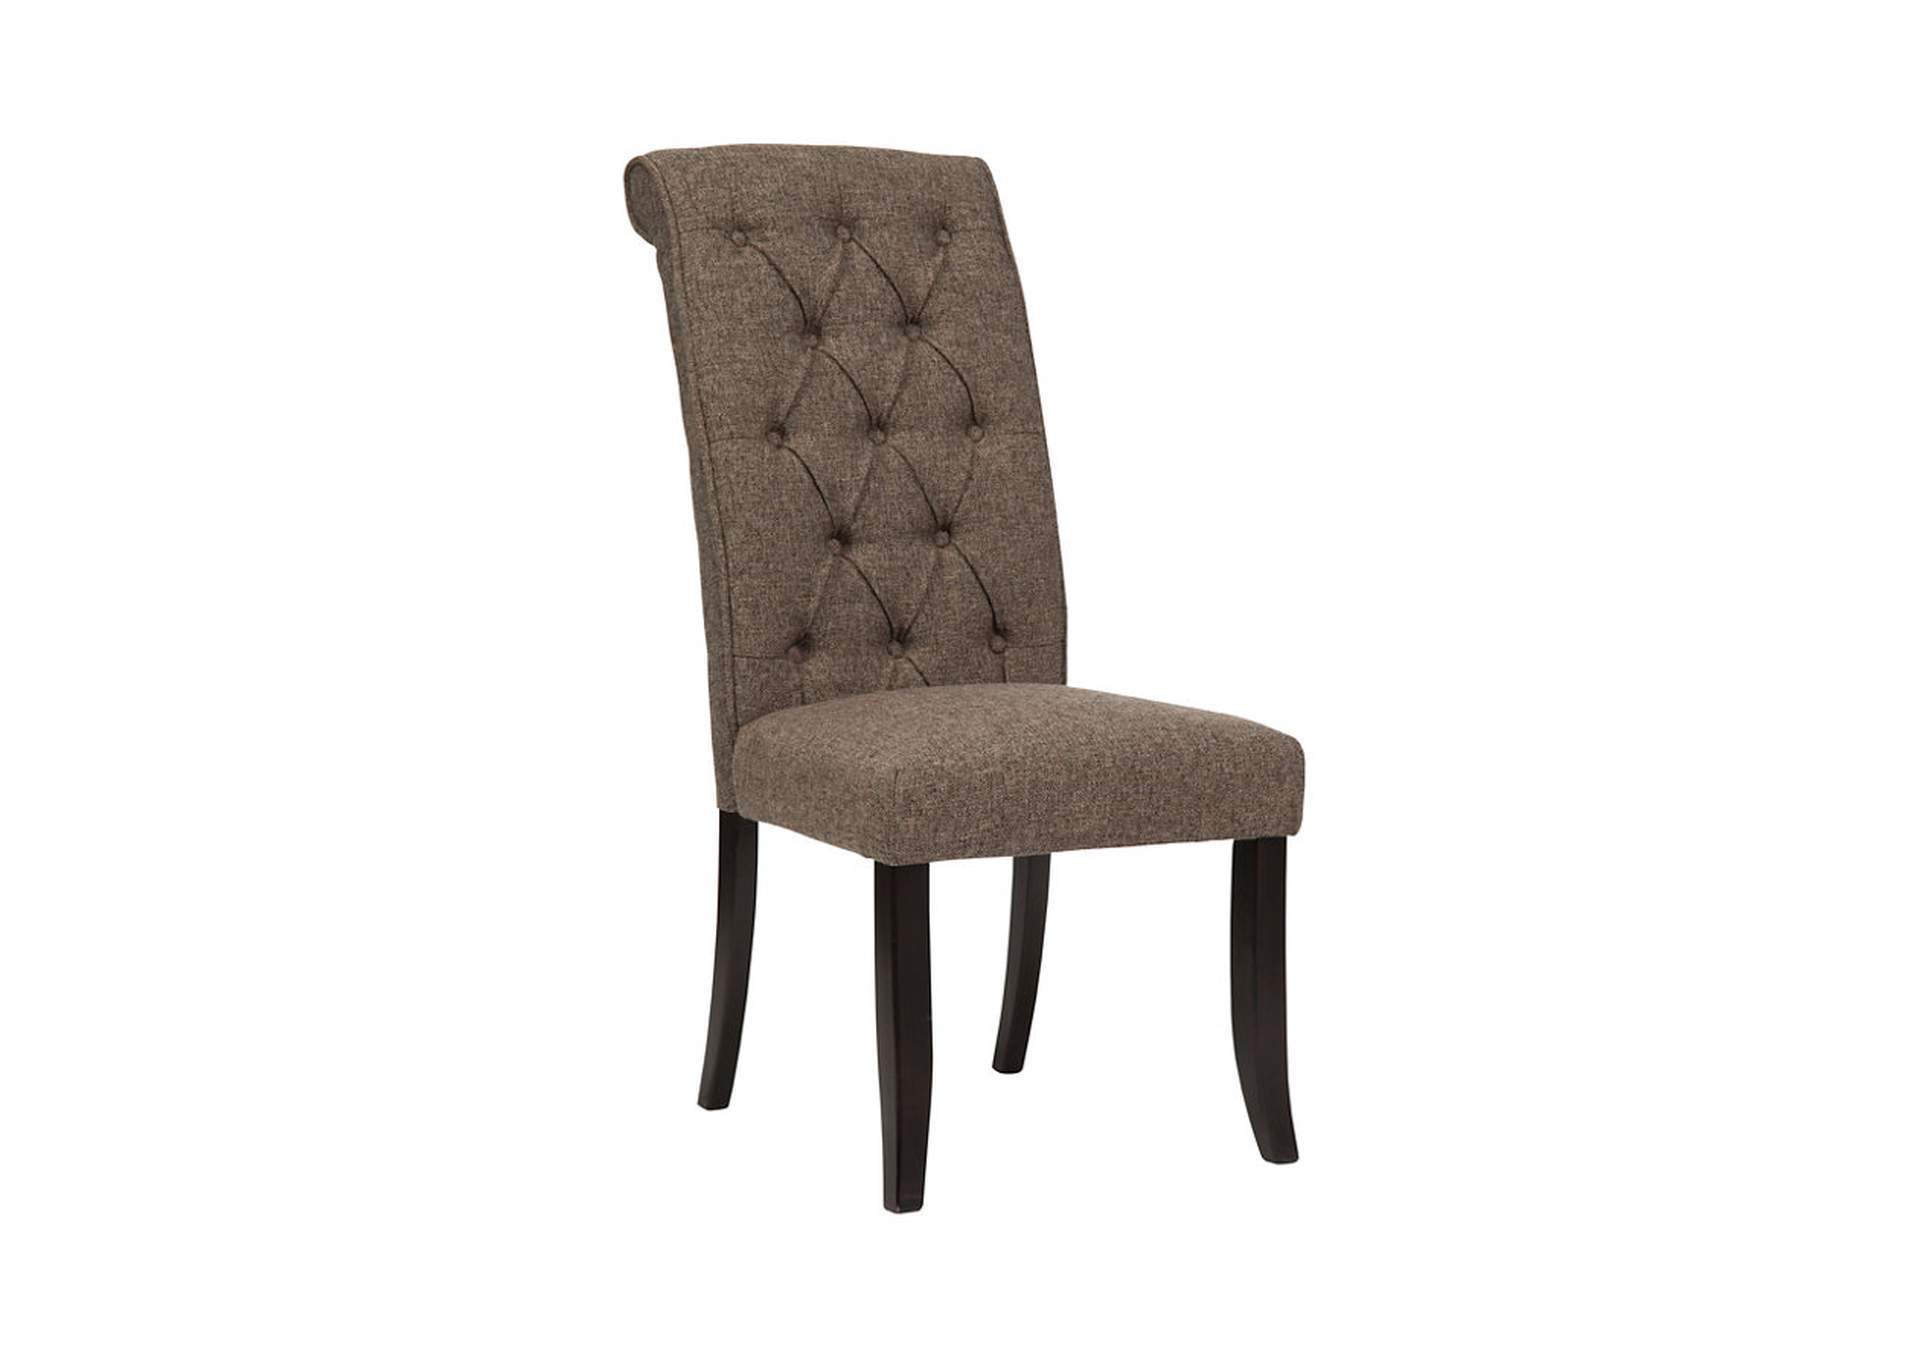 Tripton Medium Brown Dining Upholstered Side Chair (Set of 2),ABF Signature Design by Ashley